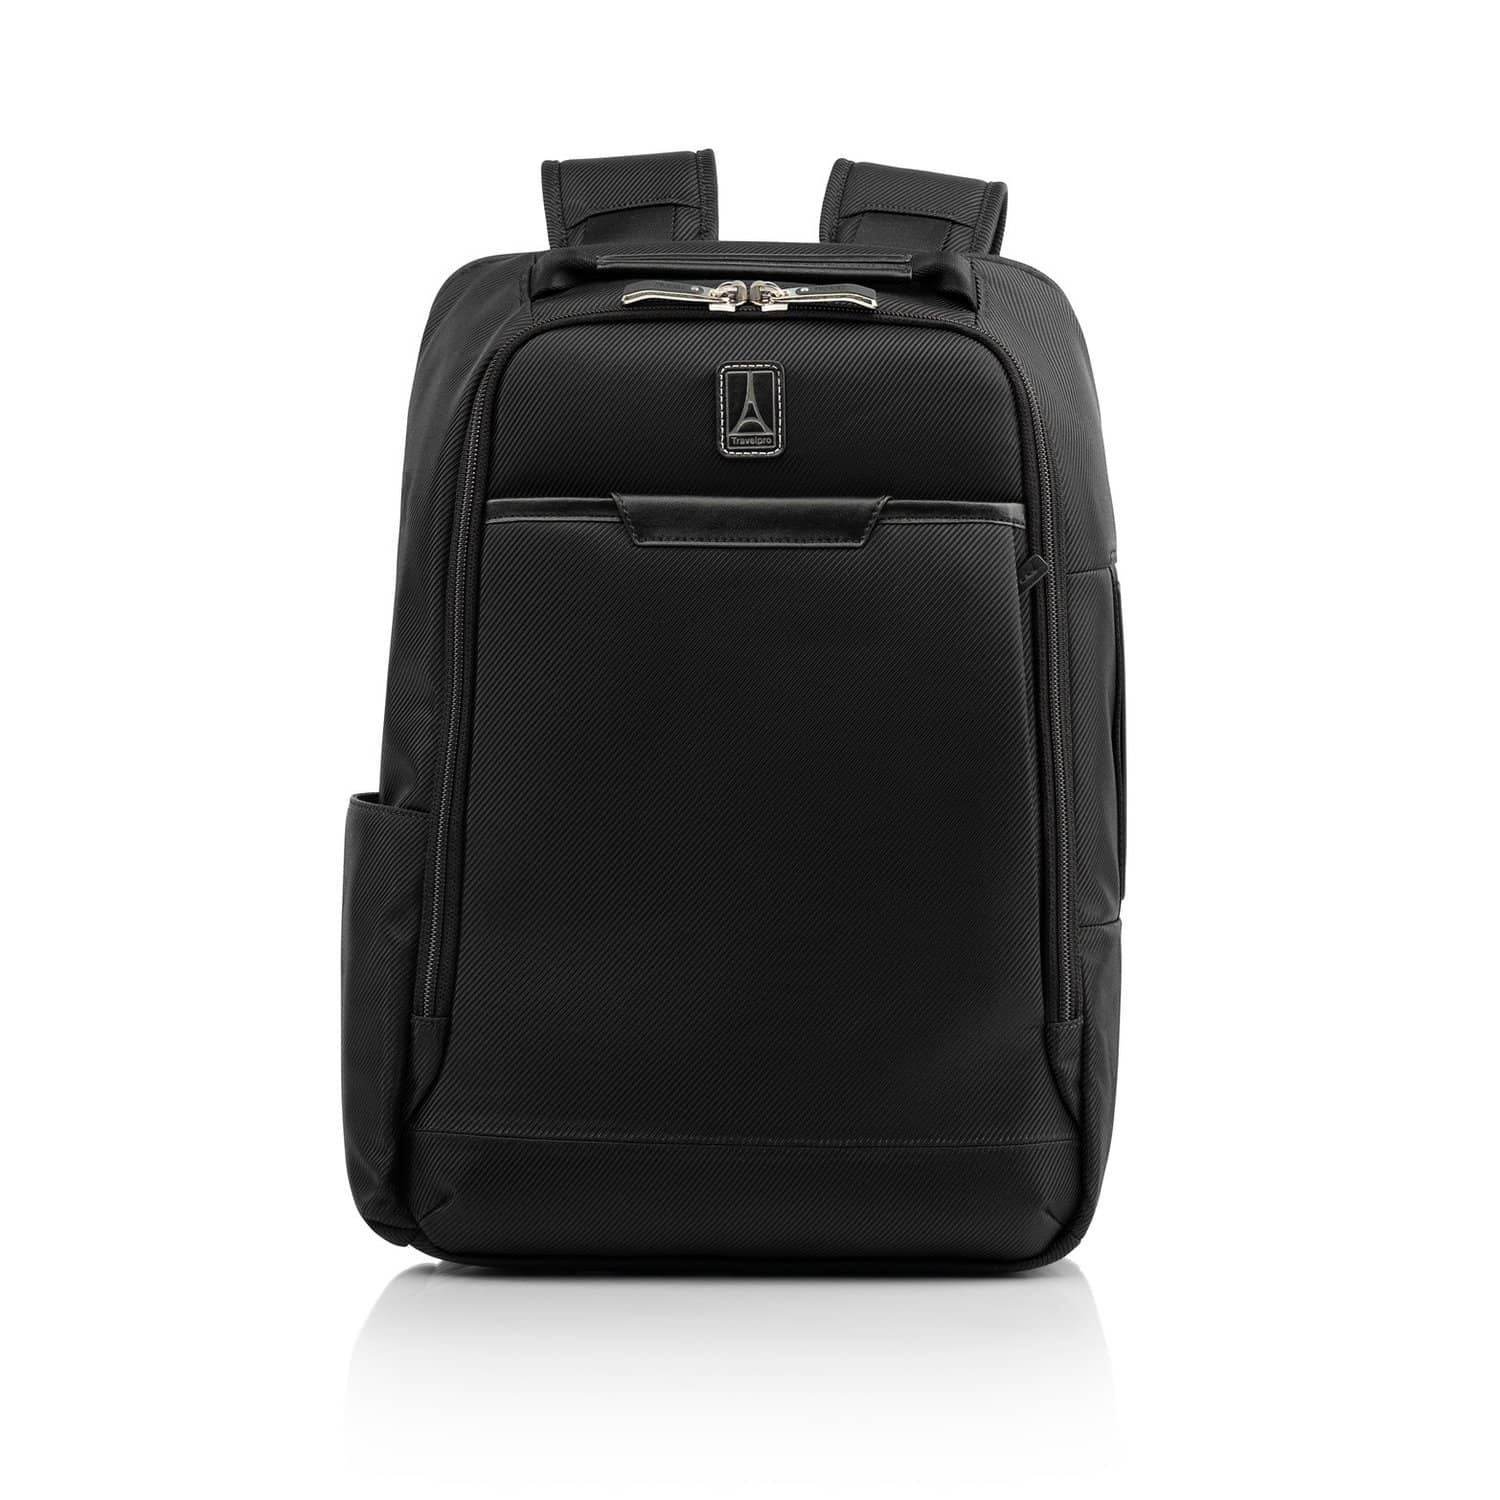 Travelpro Travelpro® X Travel + Leisure® Slim Backpack BLACK DIAMOND